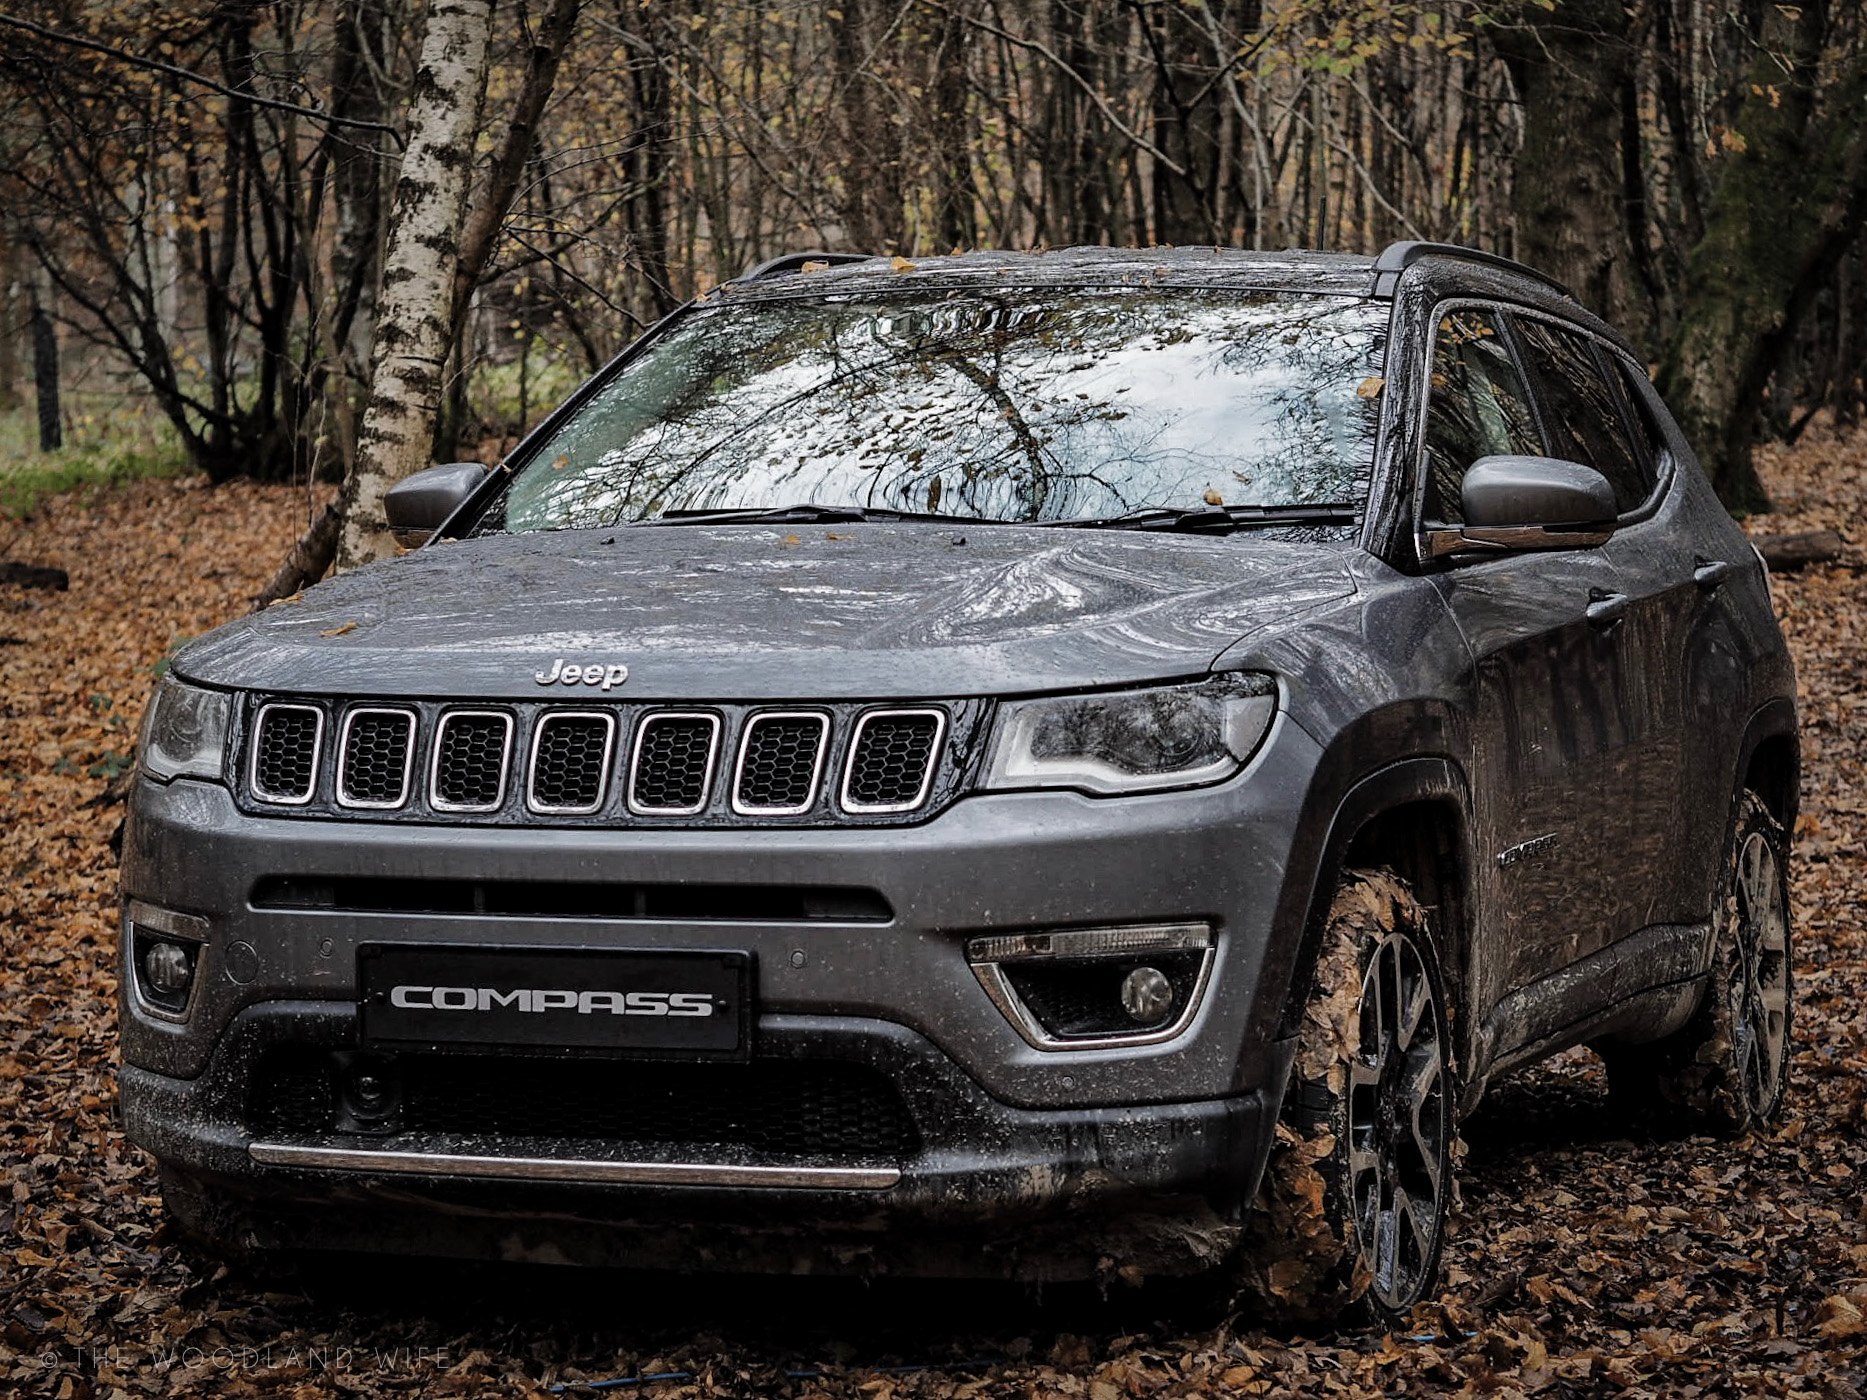 The Woodland Wife - Jeep - All new Jeep Compass 2018 - Recalculating - Lifestyle Launch at Hunter Gather Cook